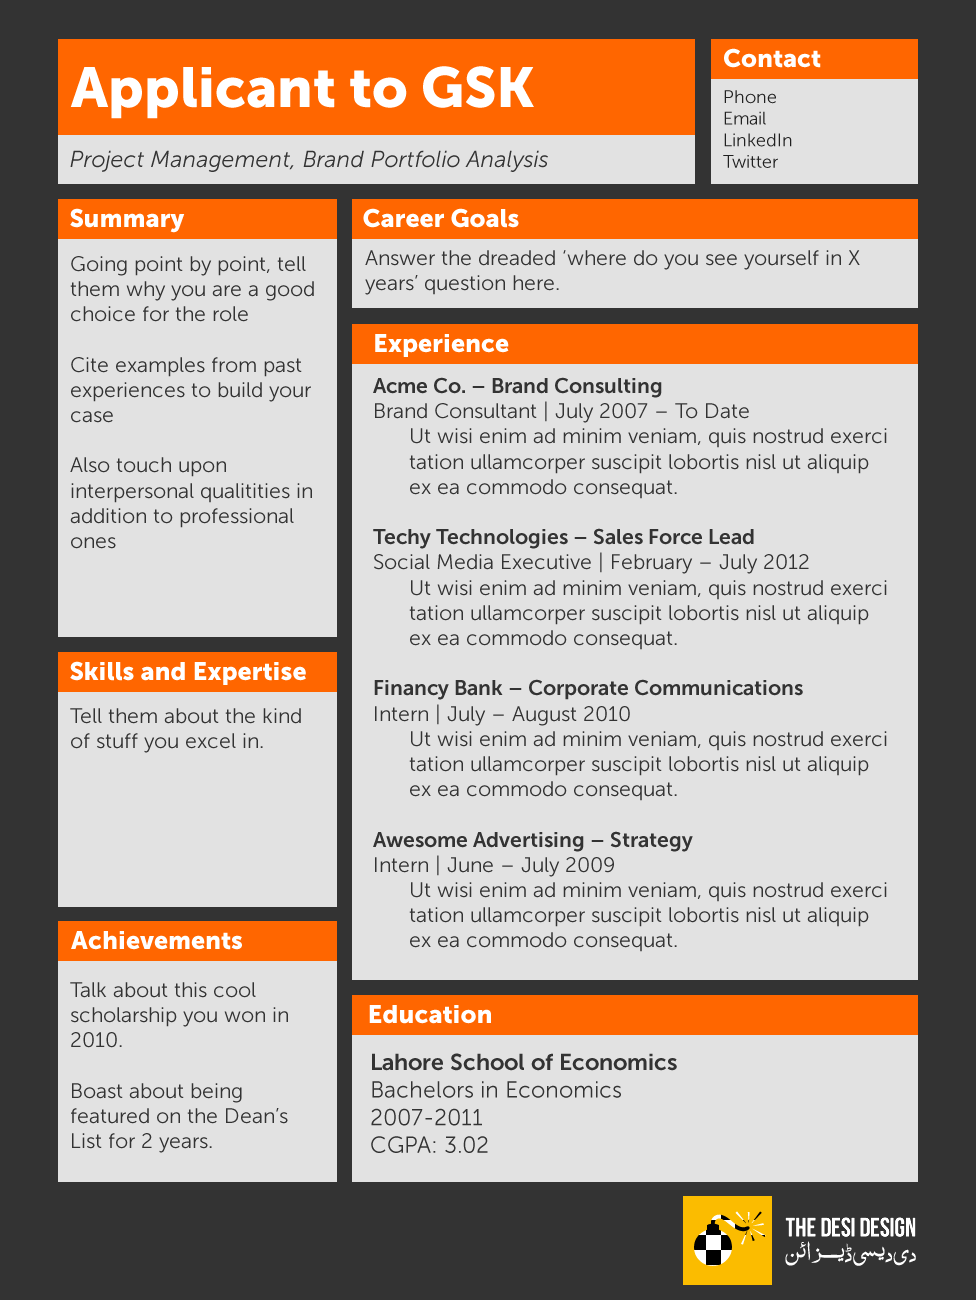 Psd Resume Template 51 Free Samples Examples Format Revolutionizing The Resume The Desi Design